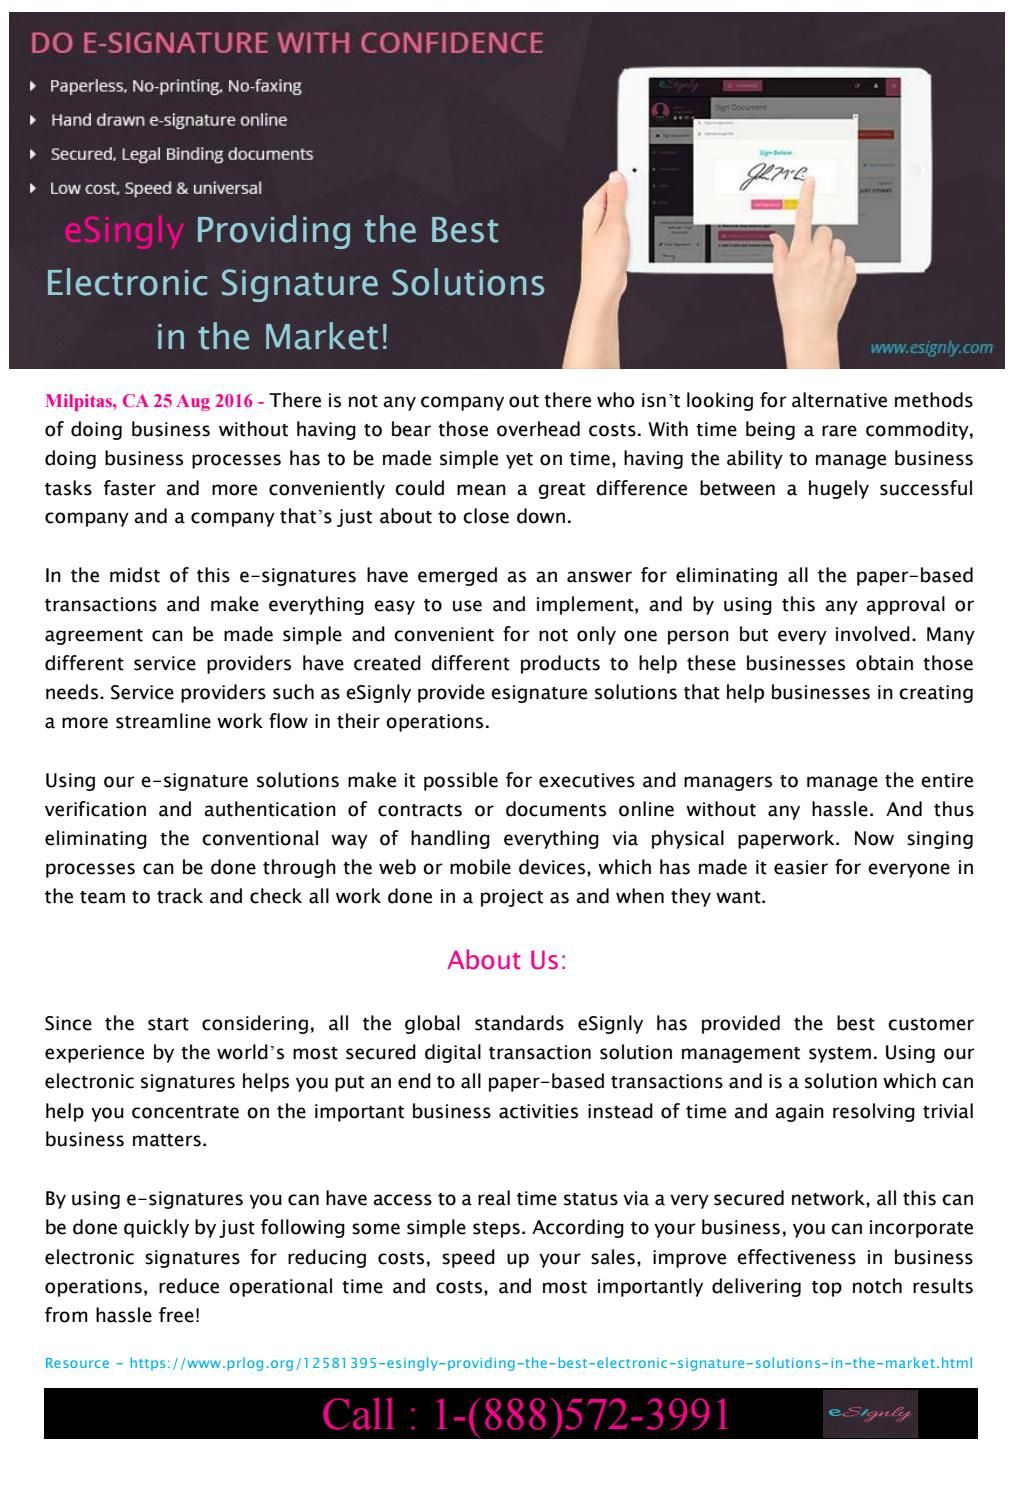 Esingly Providing The Best Electronic Signature Solution Electronic Signature Solutions Electronics